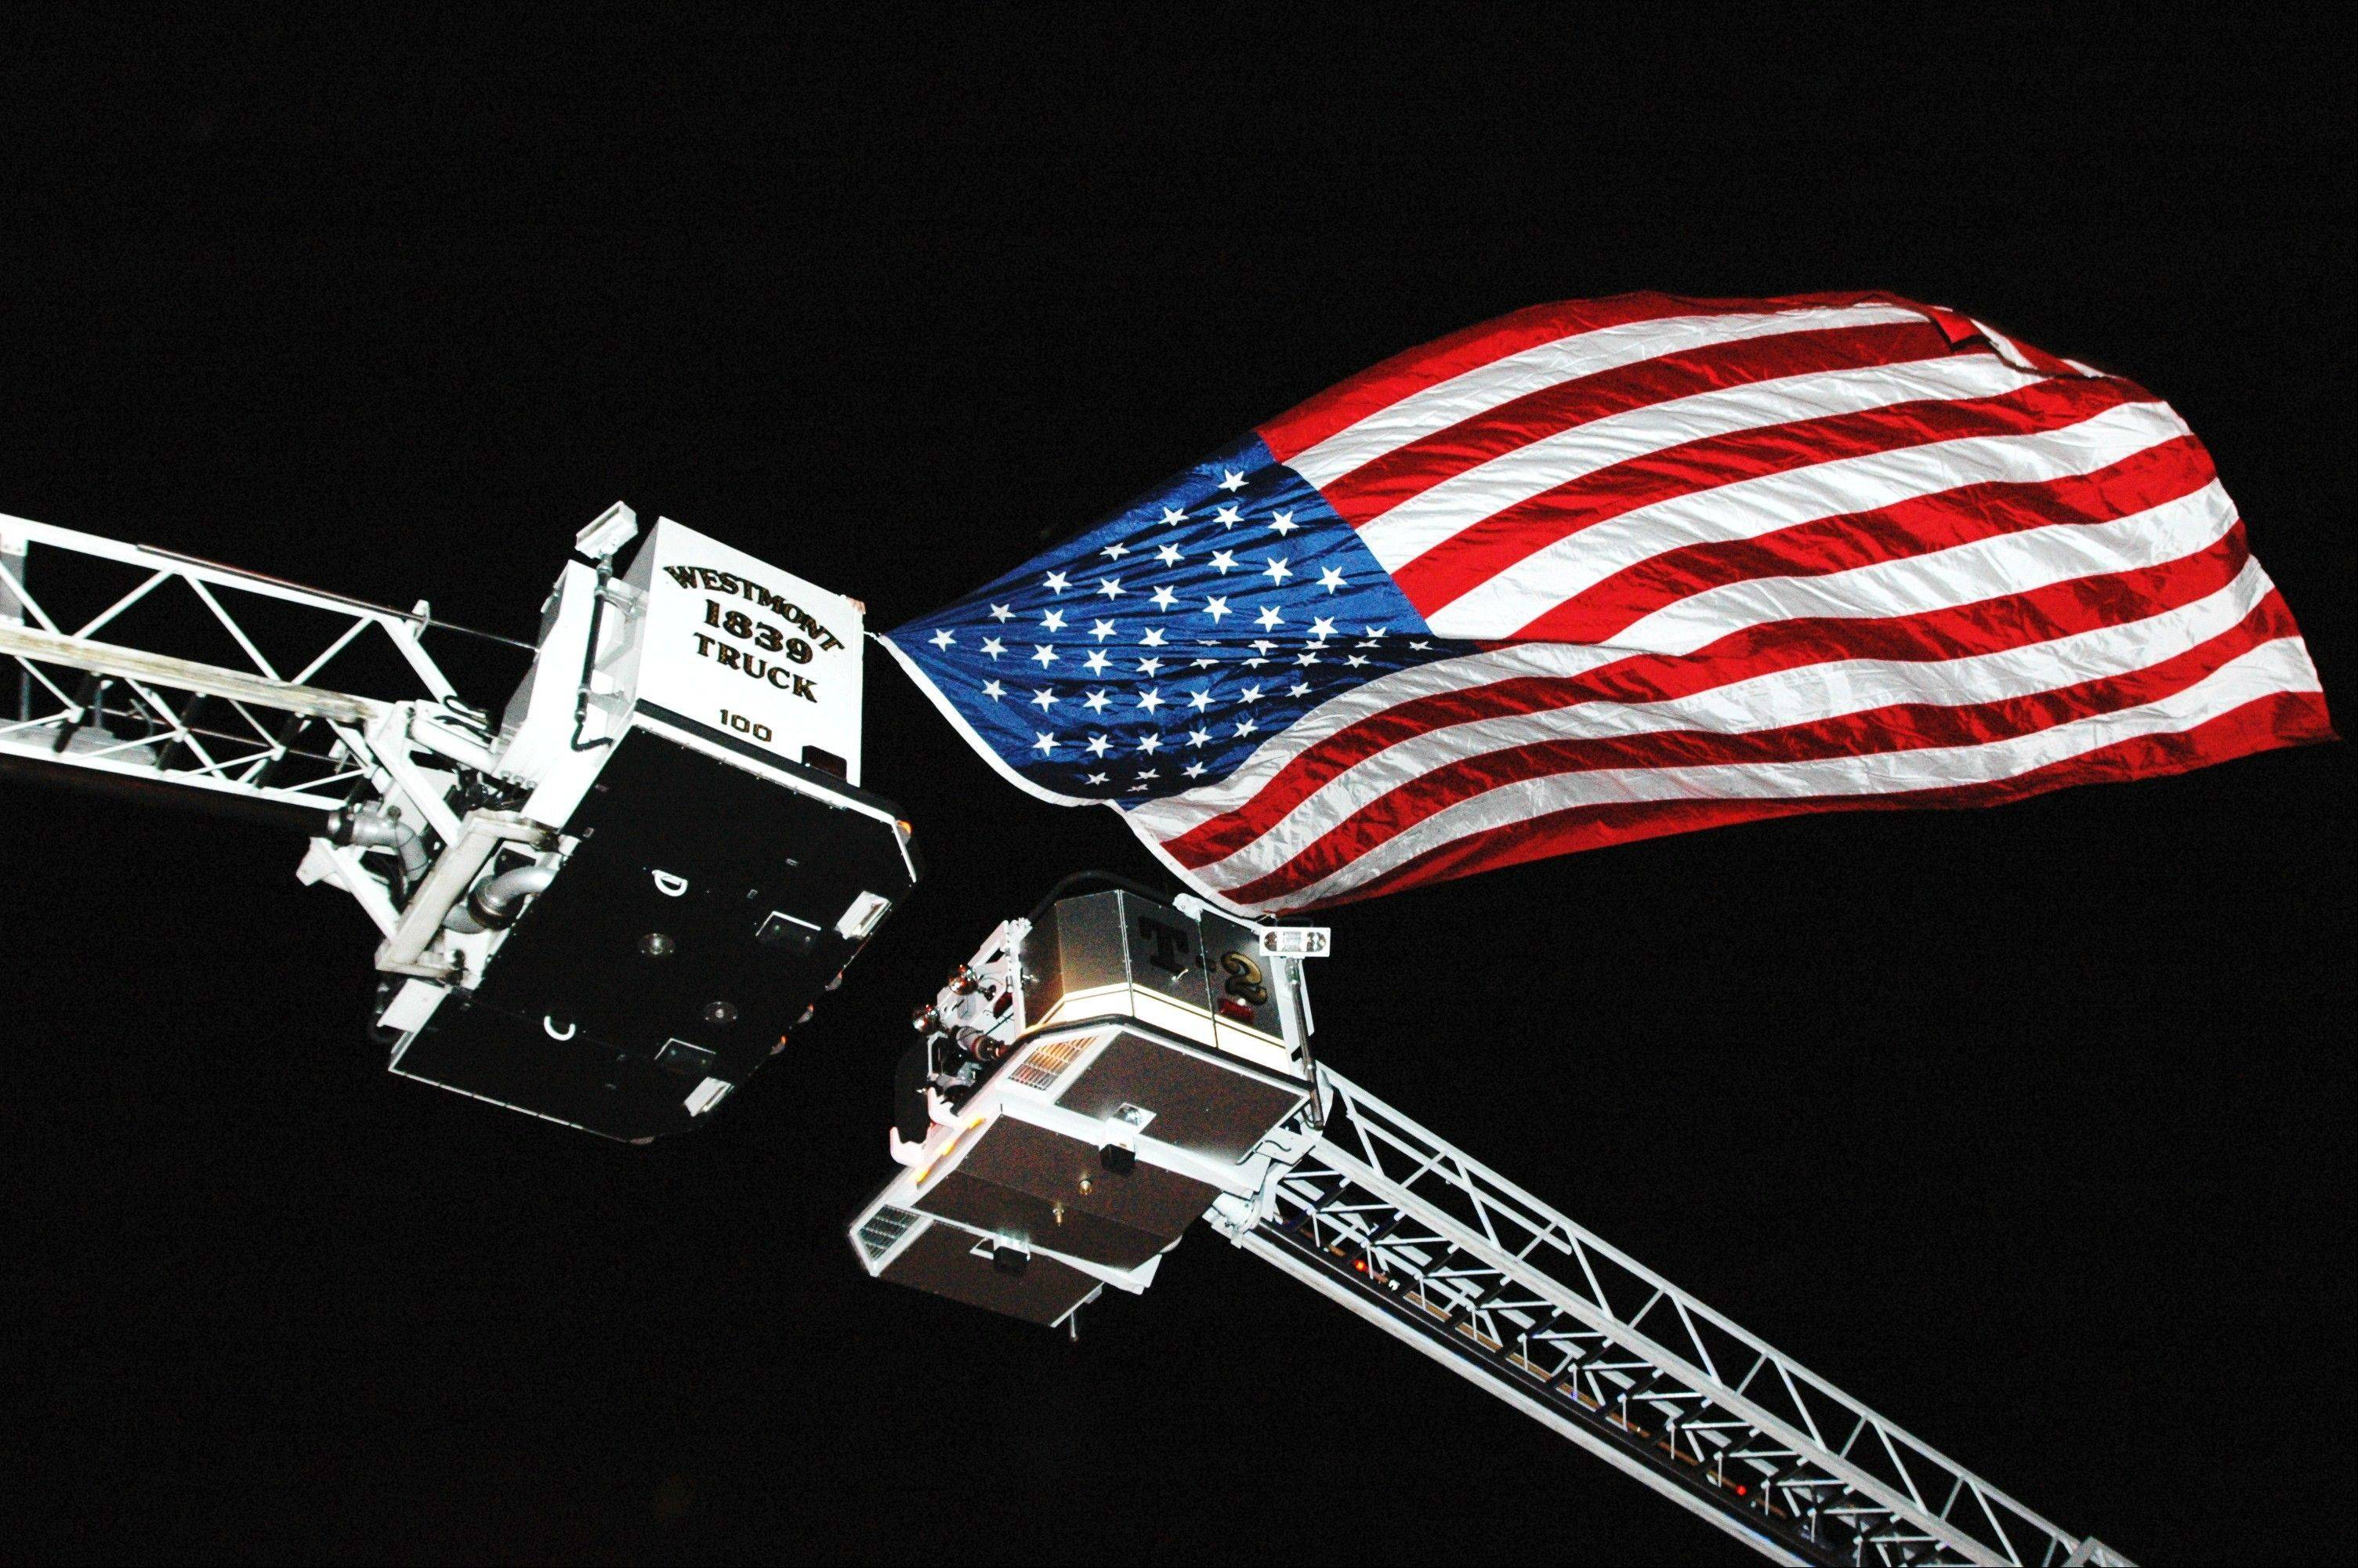 Fire truck ladders are used to hoist an American flag along the route of last year's Silent Parade, honoring fallen firefighters and victims of fire. This year's event includes representatives from 30 departments and begins at 7 p.m. Friday, running along Maple Avenue from Hinsdale to Lisle.